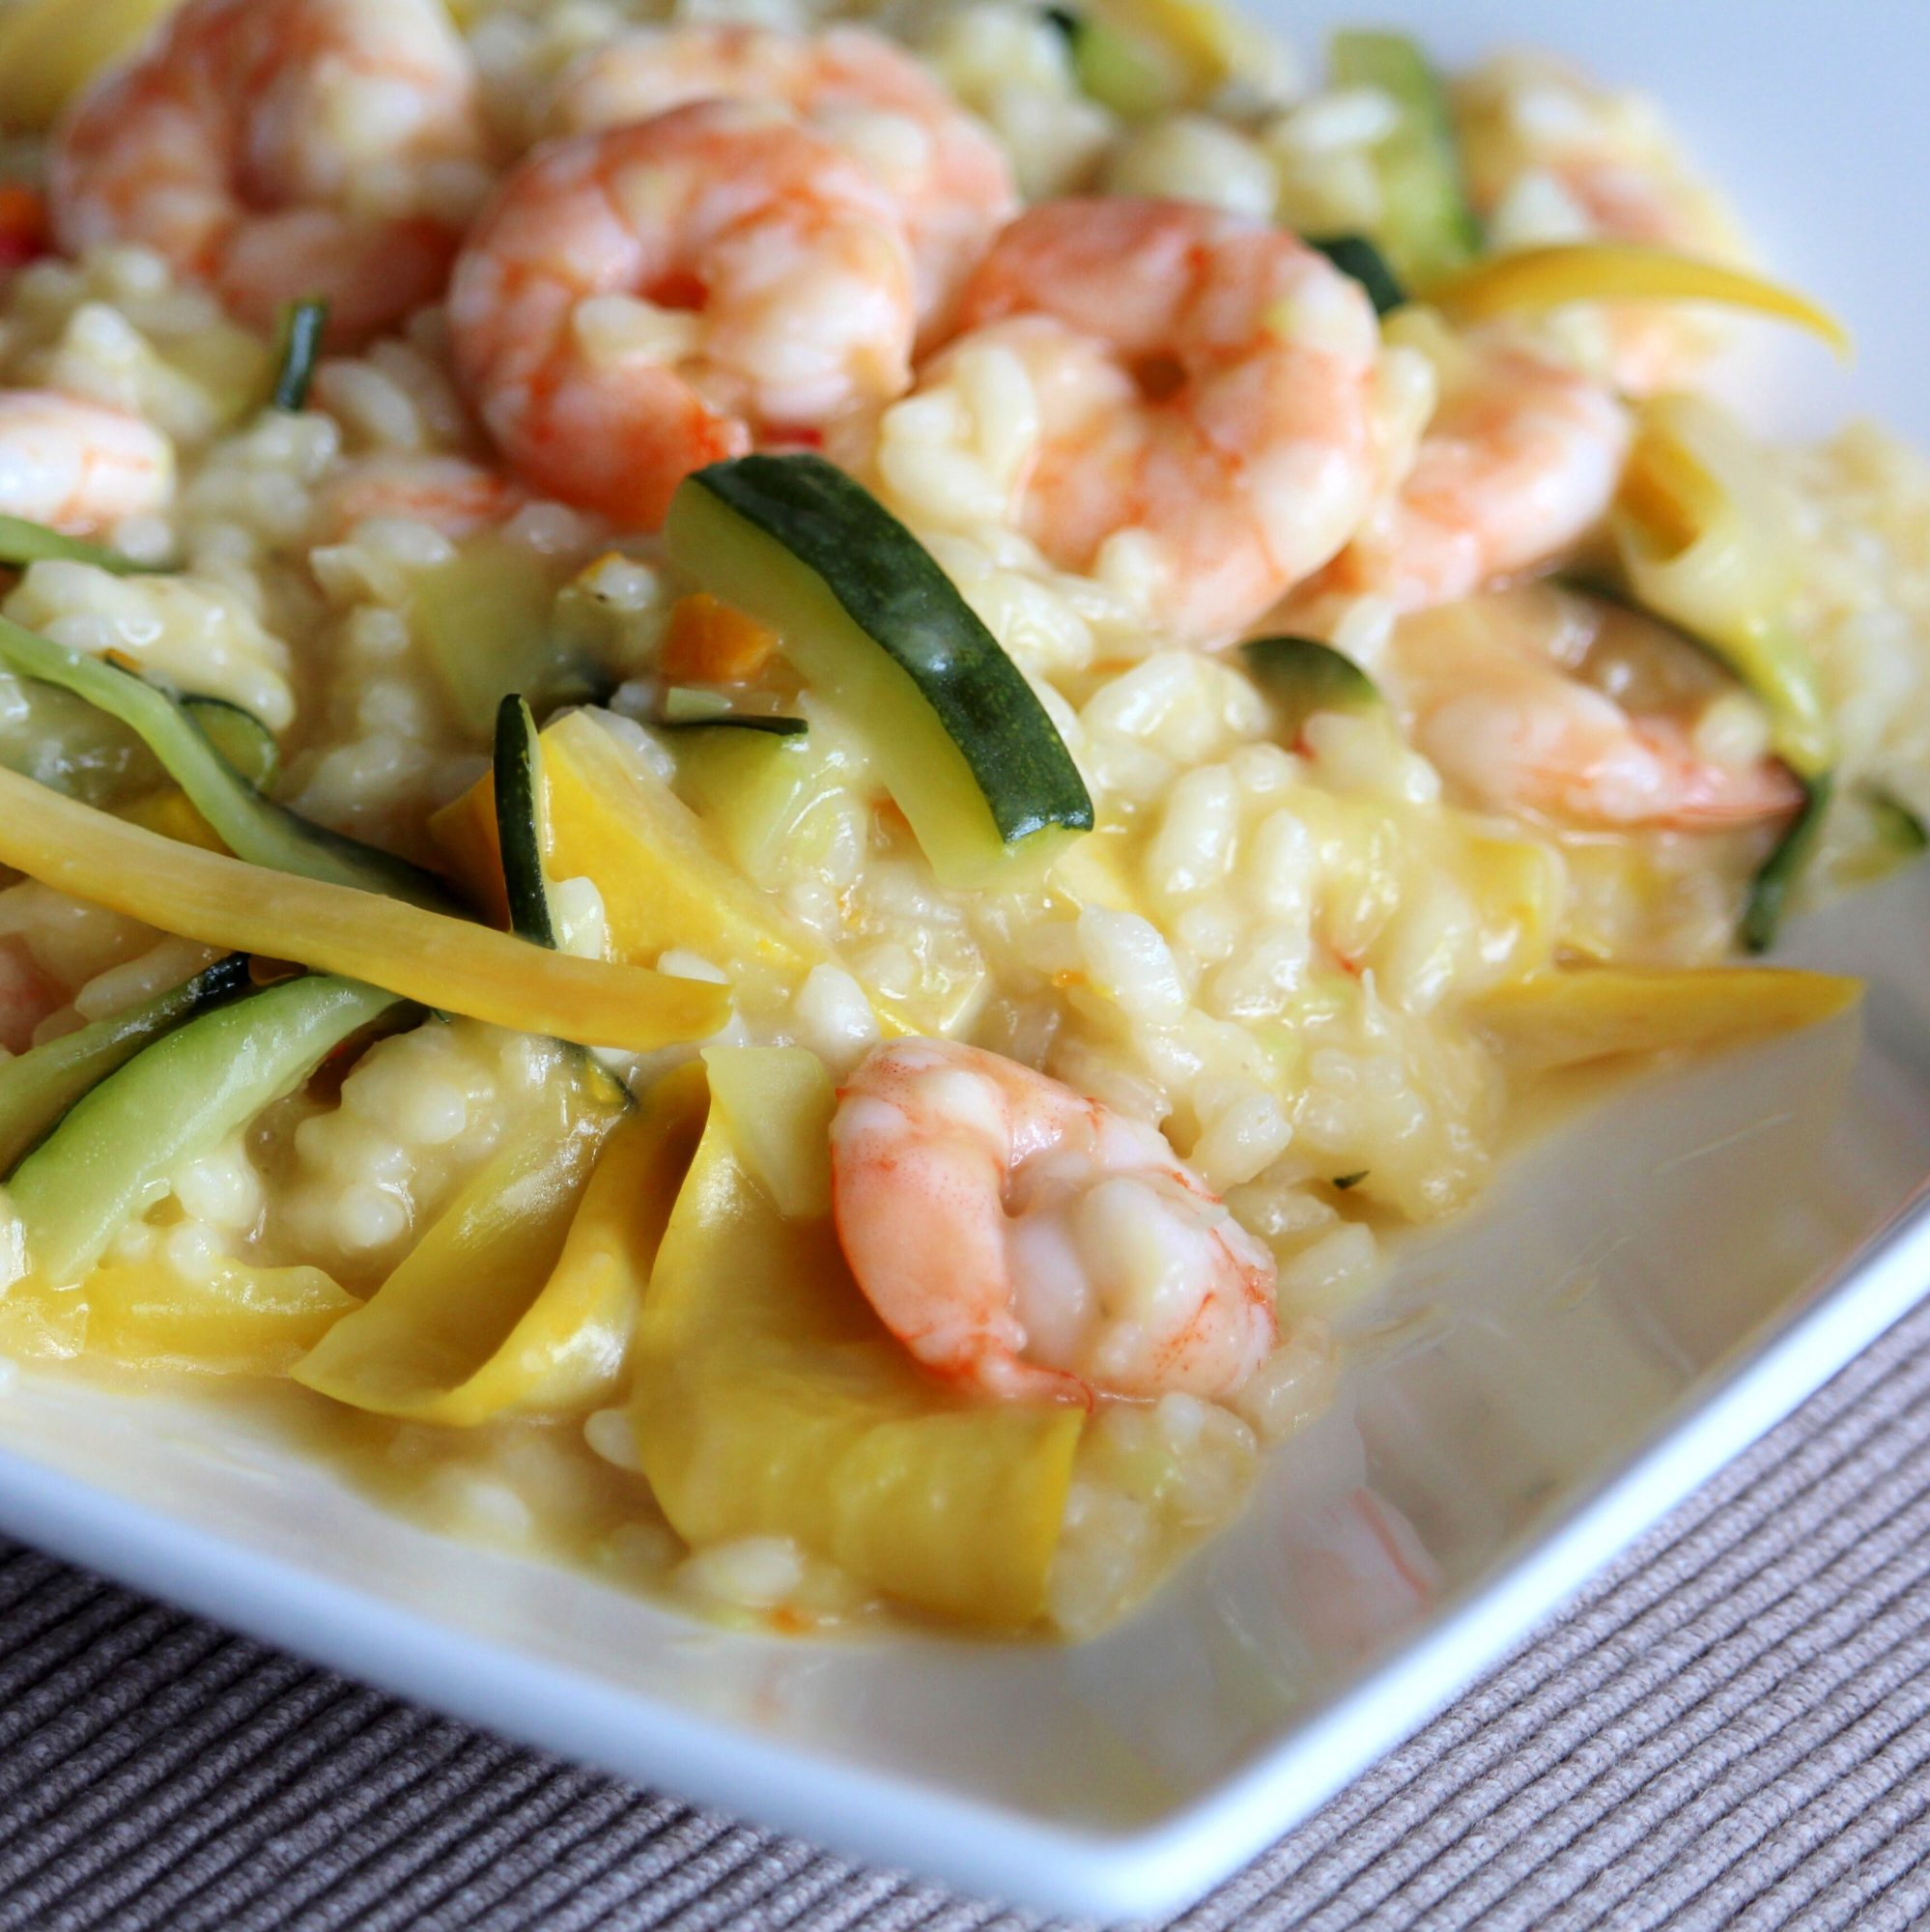 risotto with shrimp, asparagus, squash on a white plate